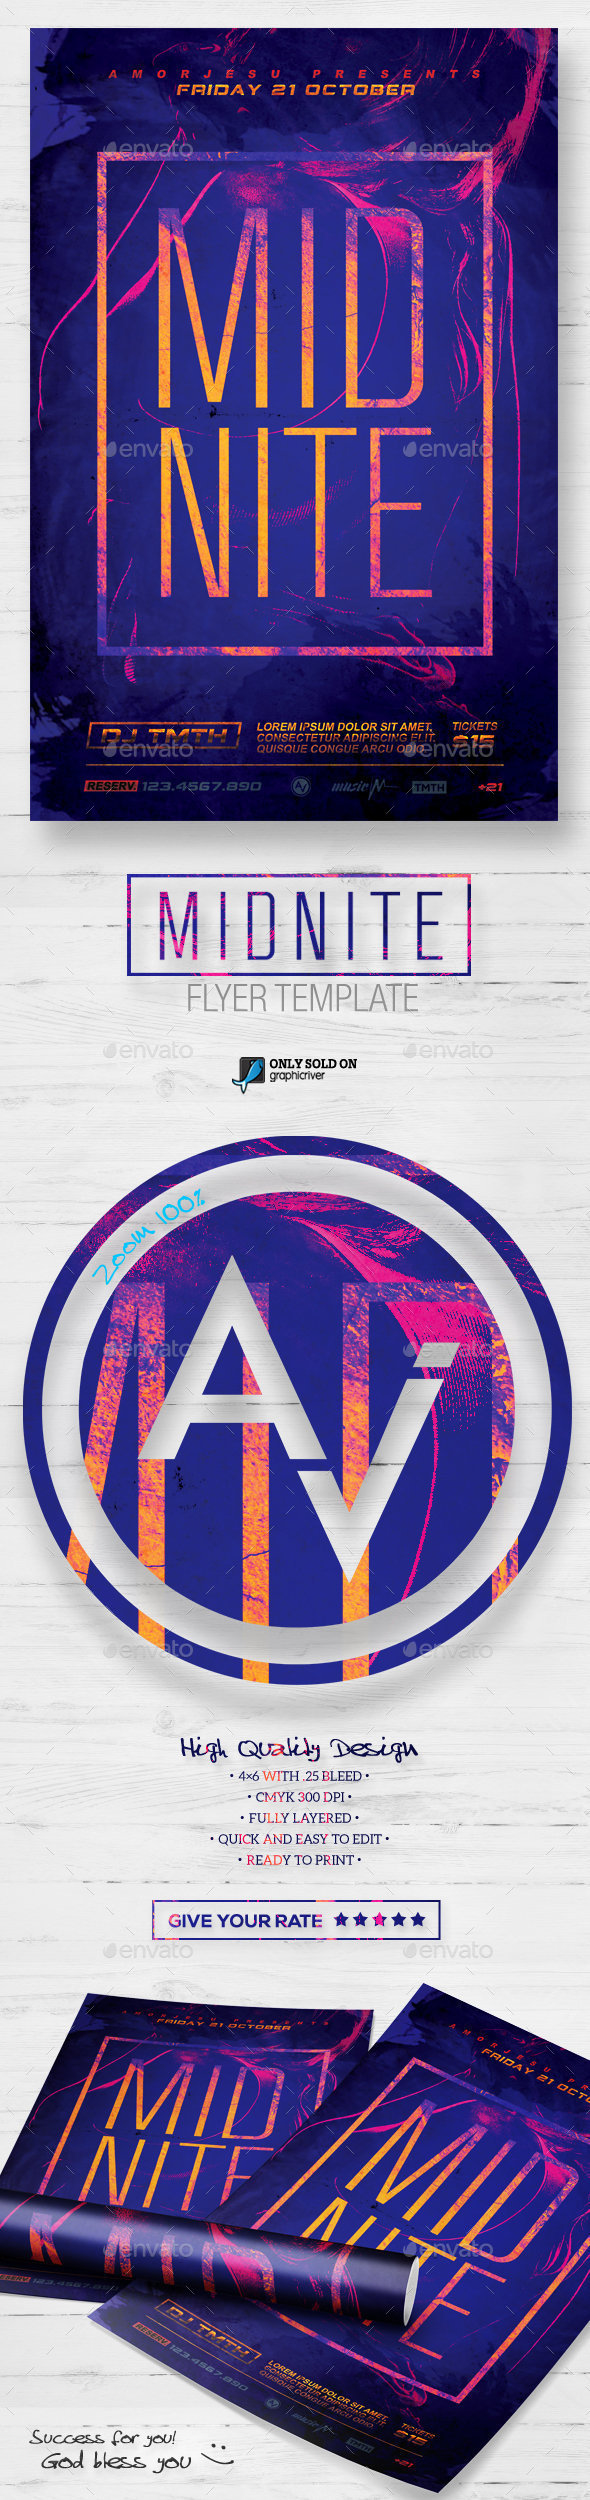 Midnite Flyer Template - Clubs & Parties Events